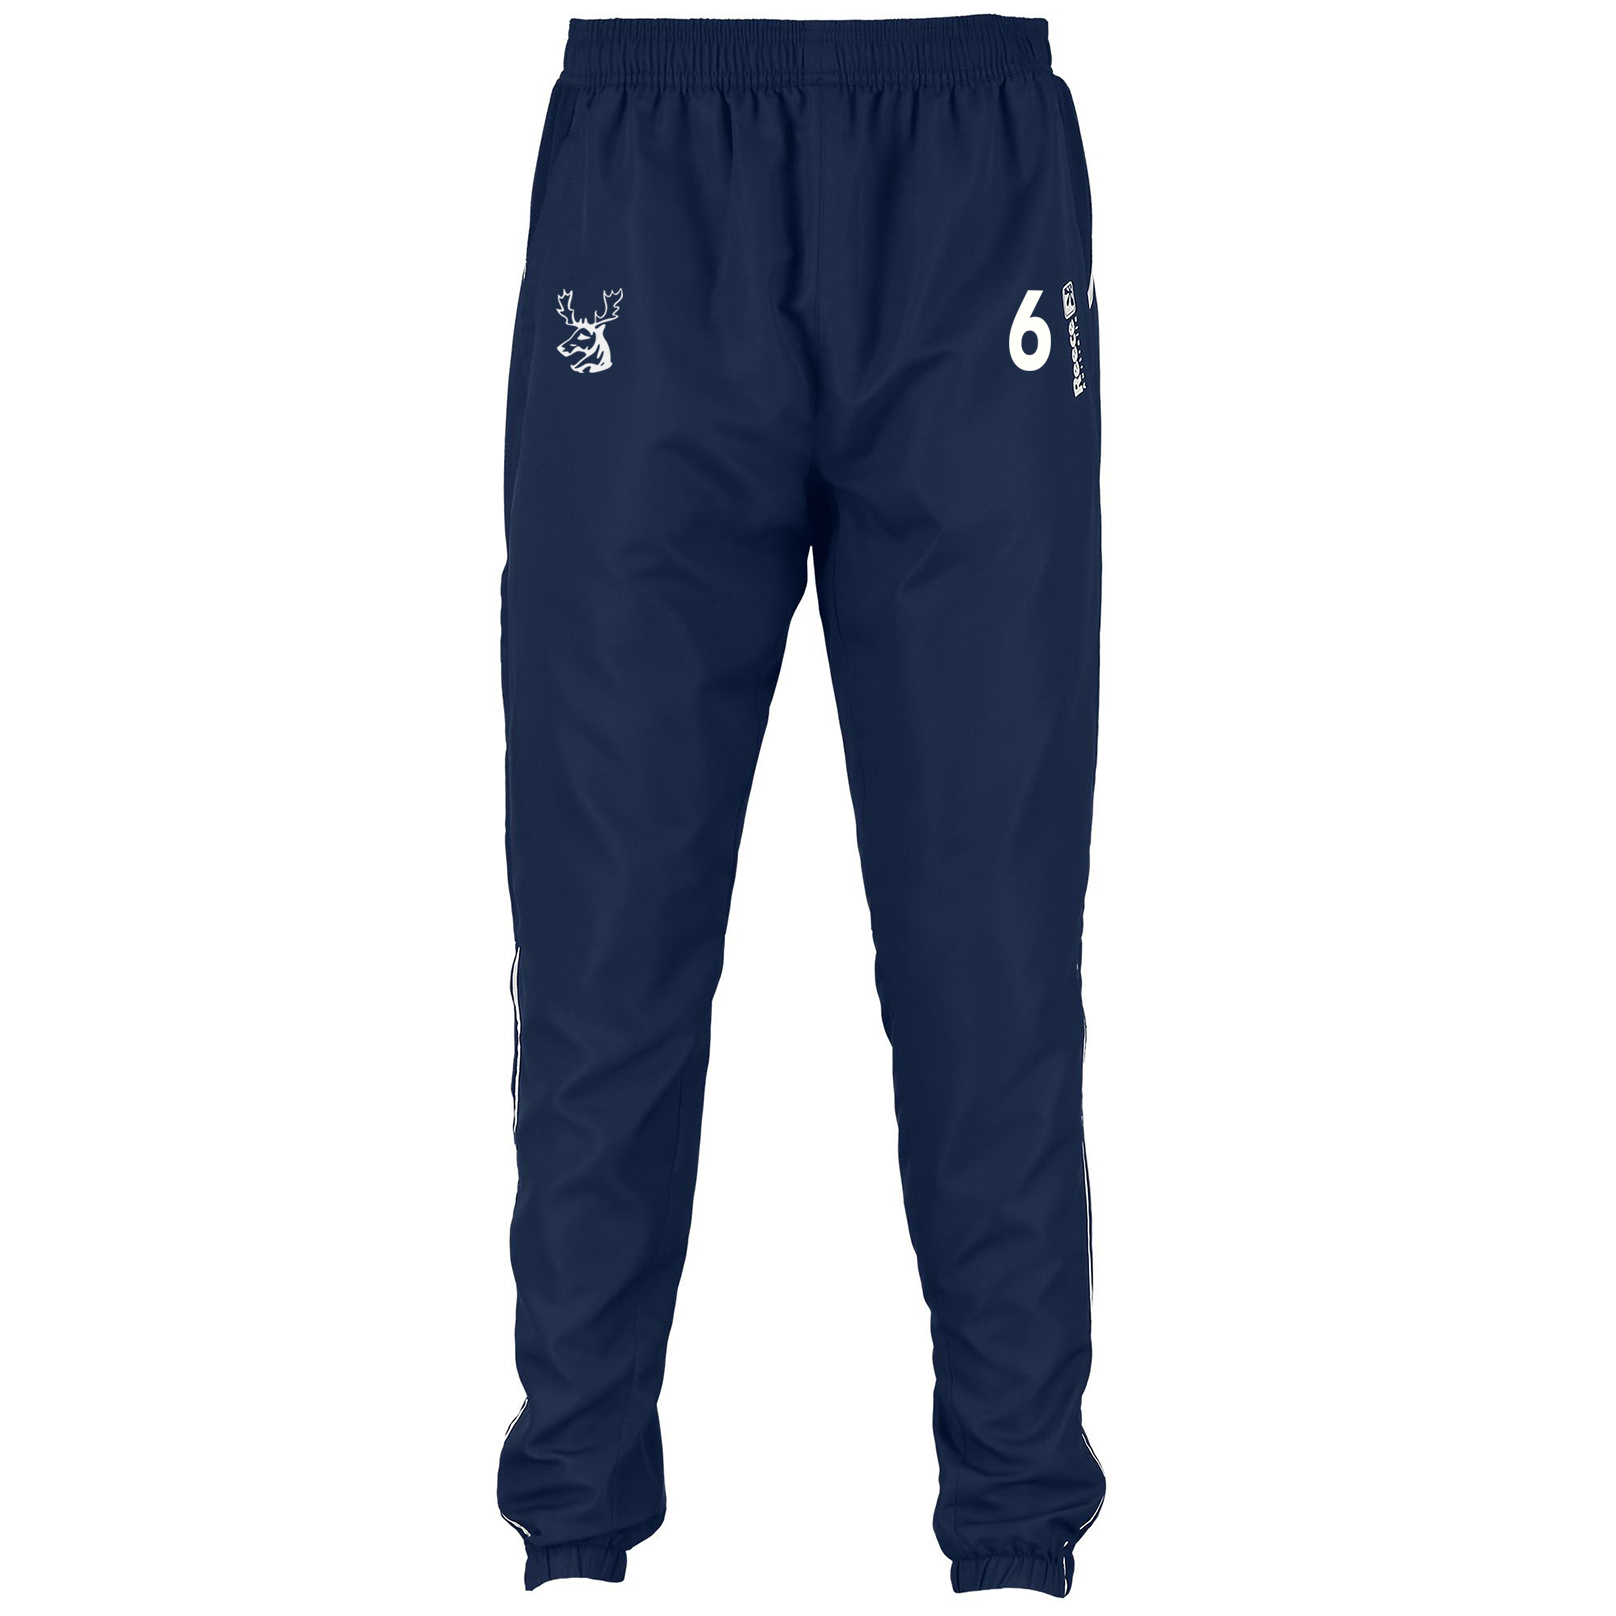 pants-navy-number